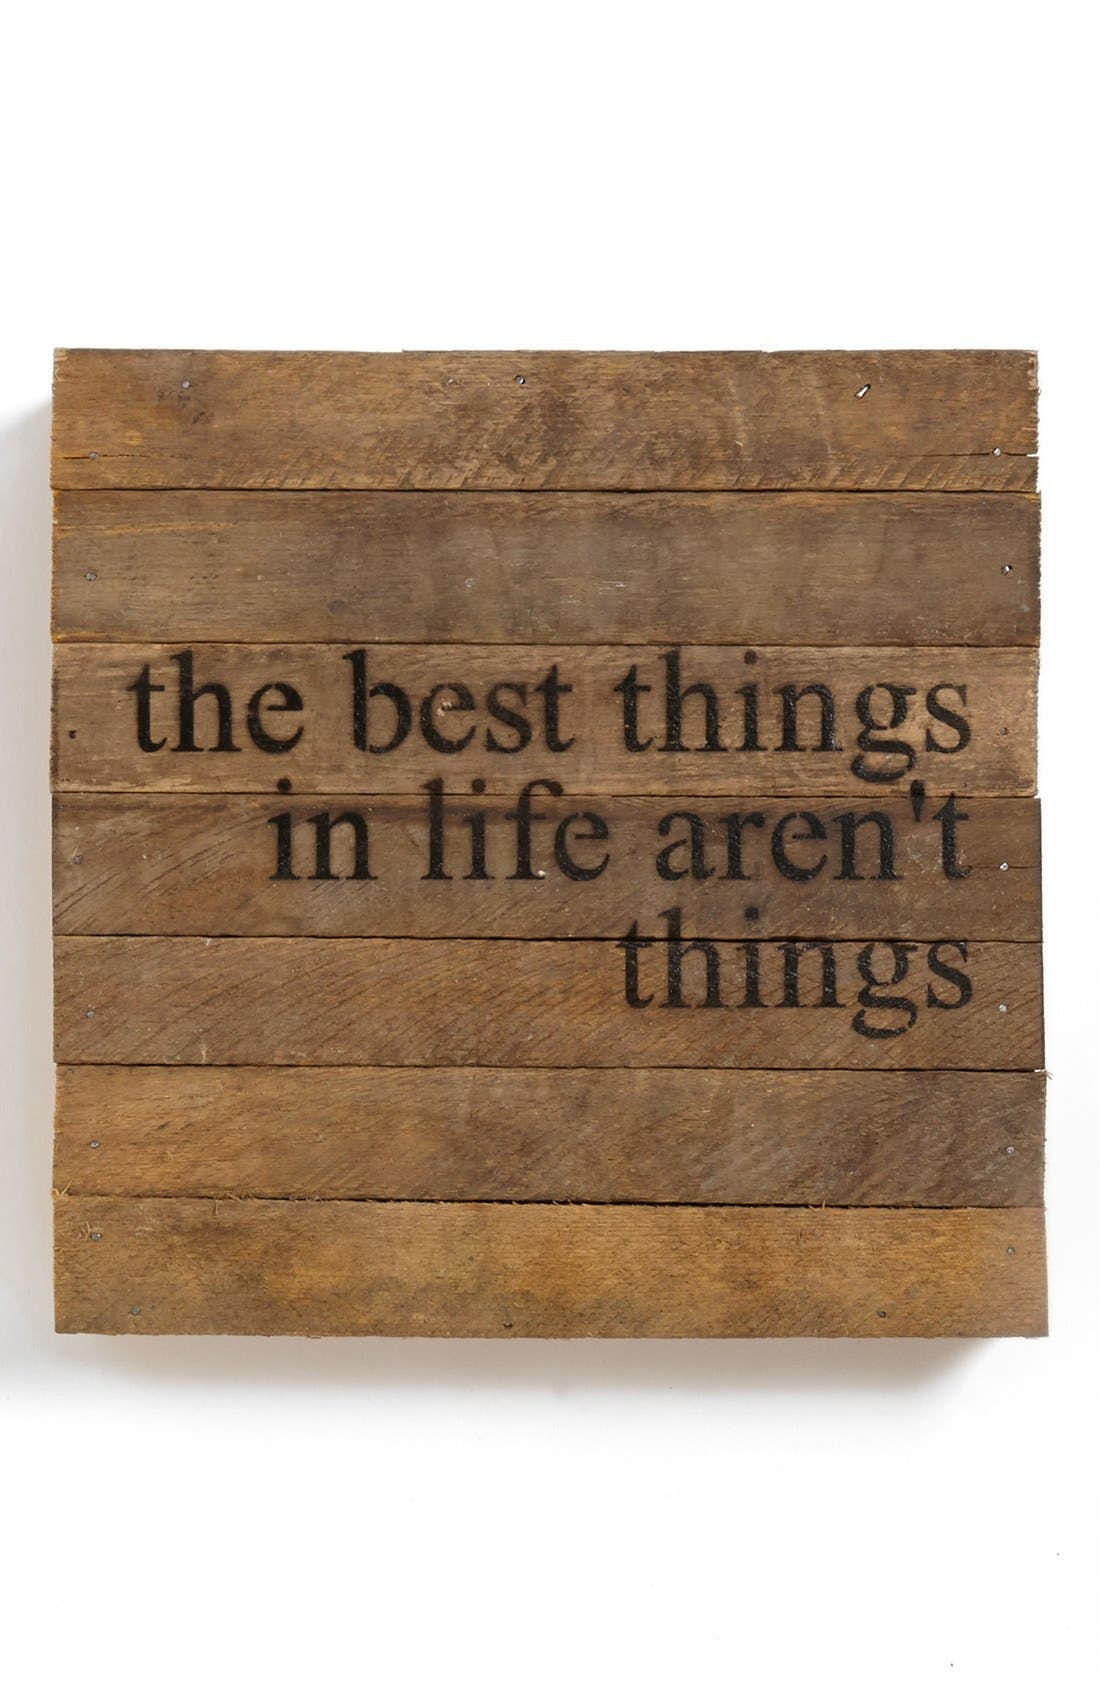 Alternate Image 1 Selected - 'The Best Things in Life' Wall Art